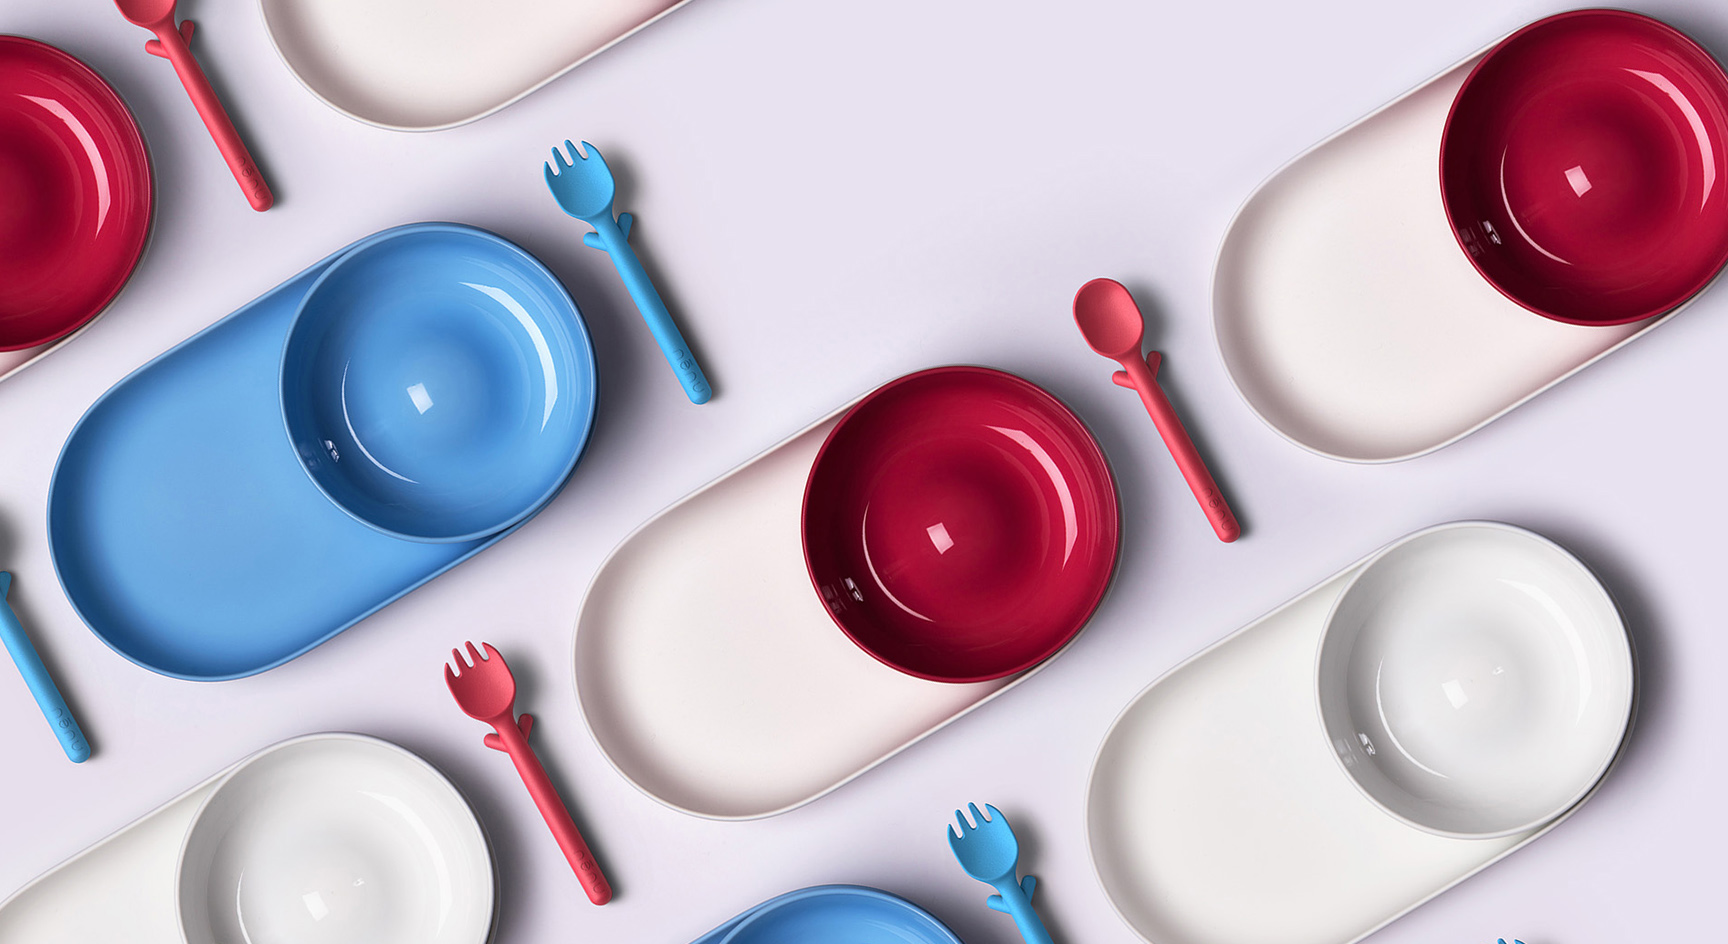 The Spoon has little leg rests so that you can set it on the table if baby prefers to feed himself or if you want to prop the spoon on the edge of the plate without having it roll over.